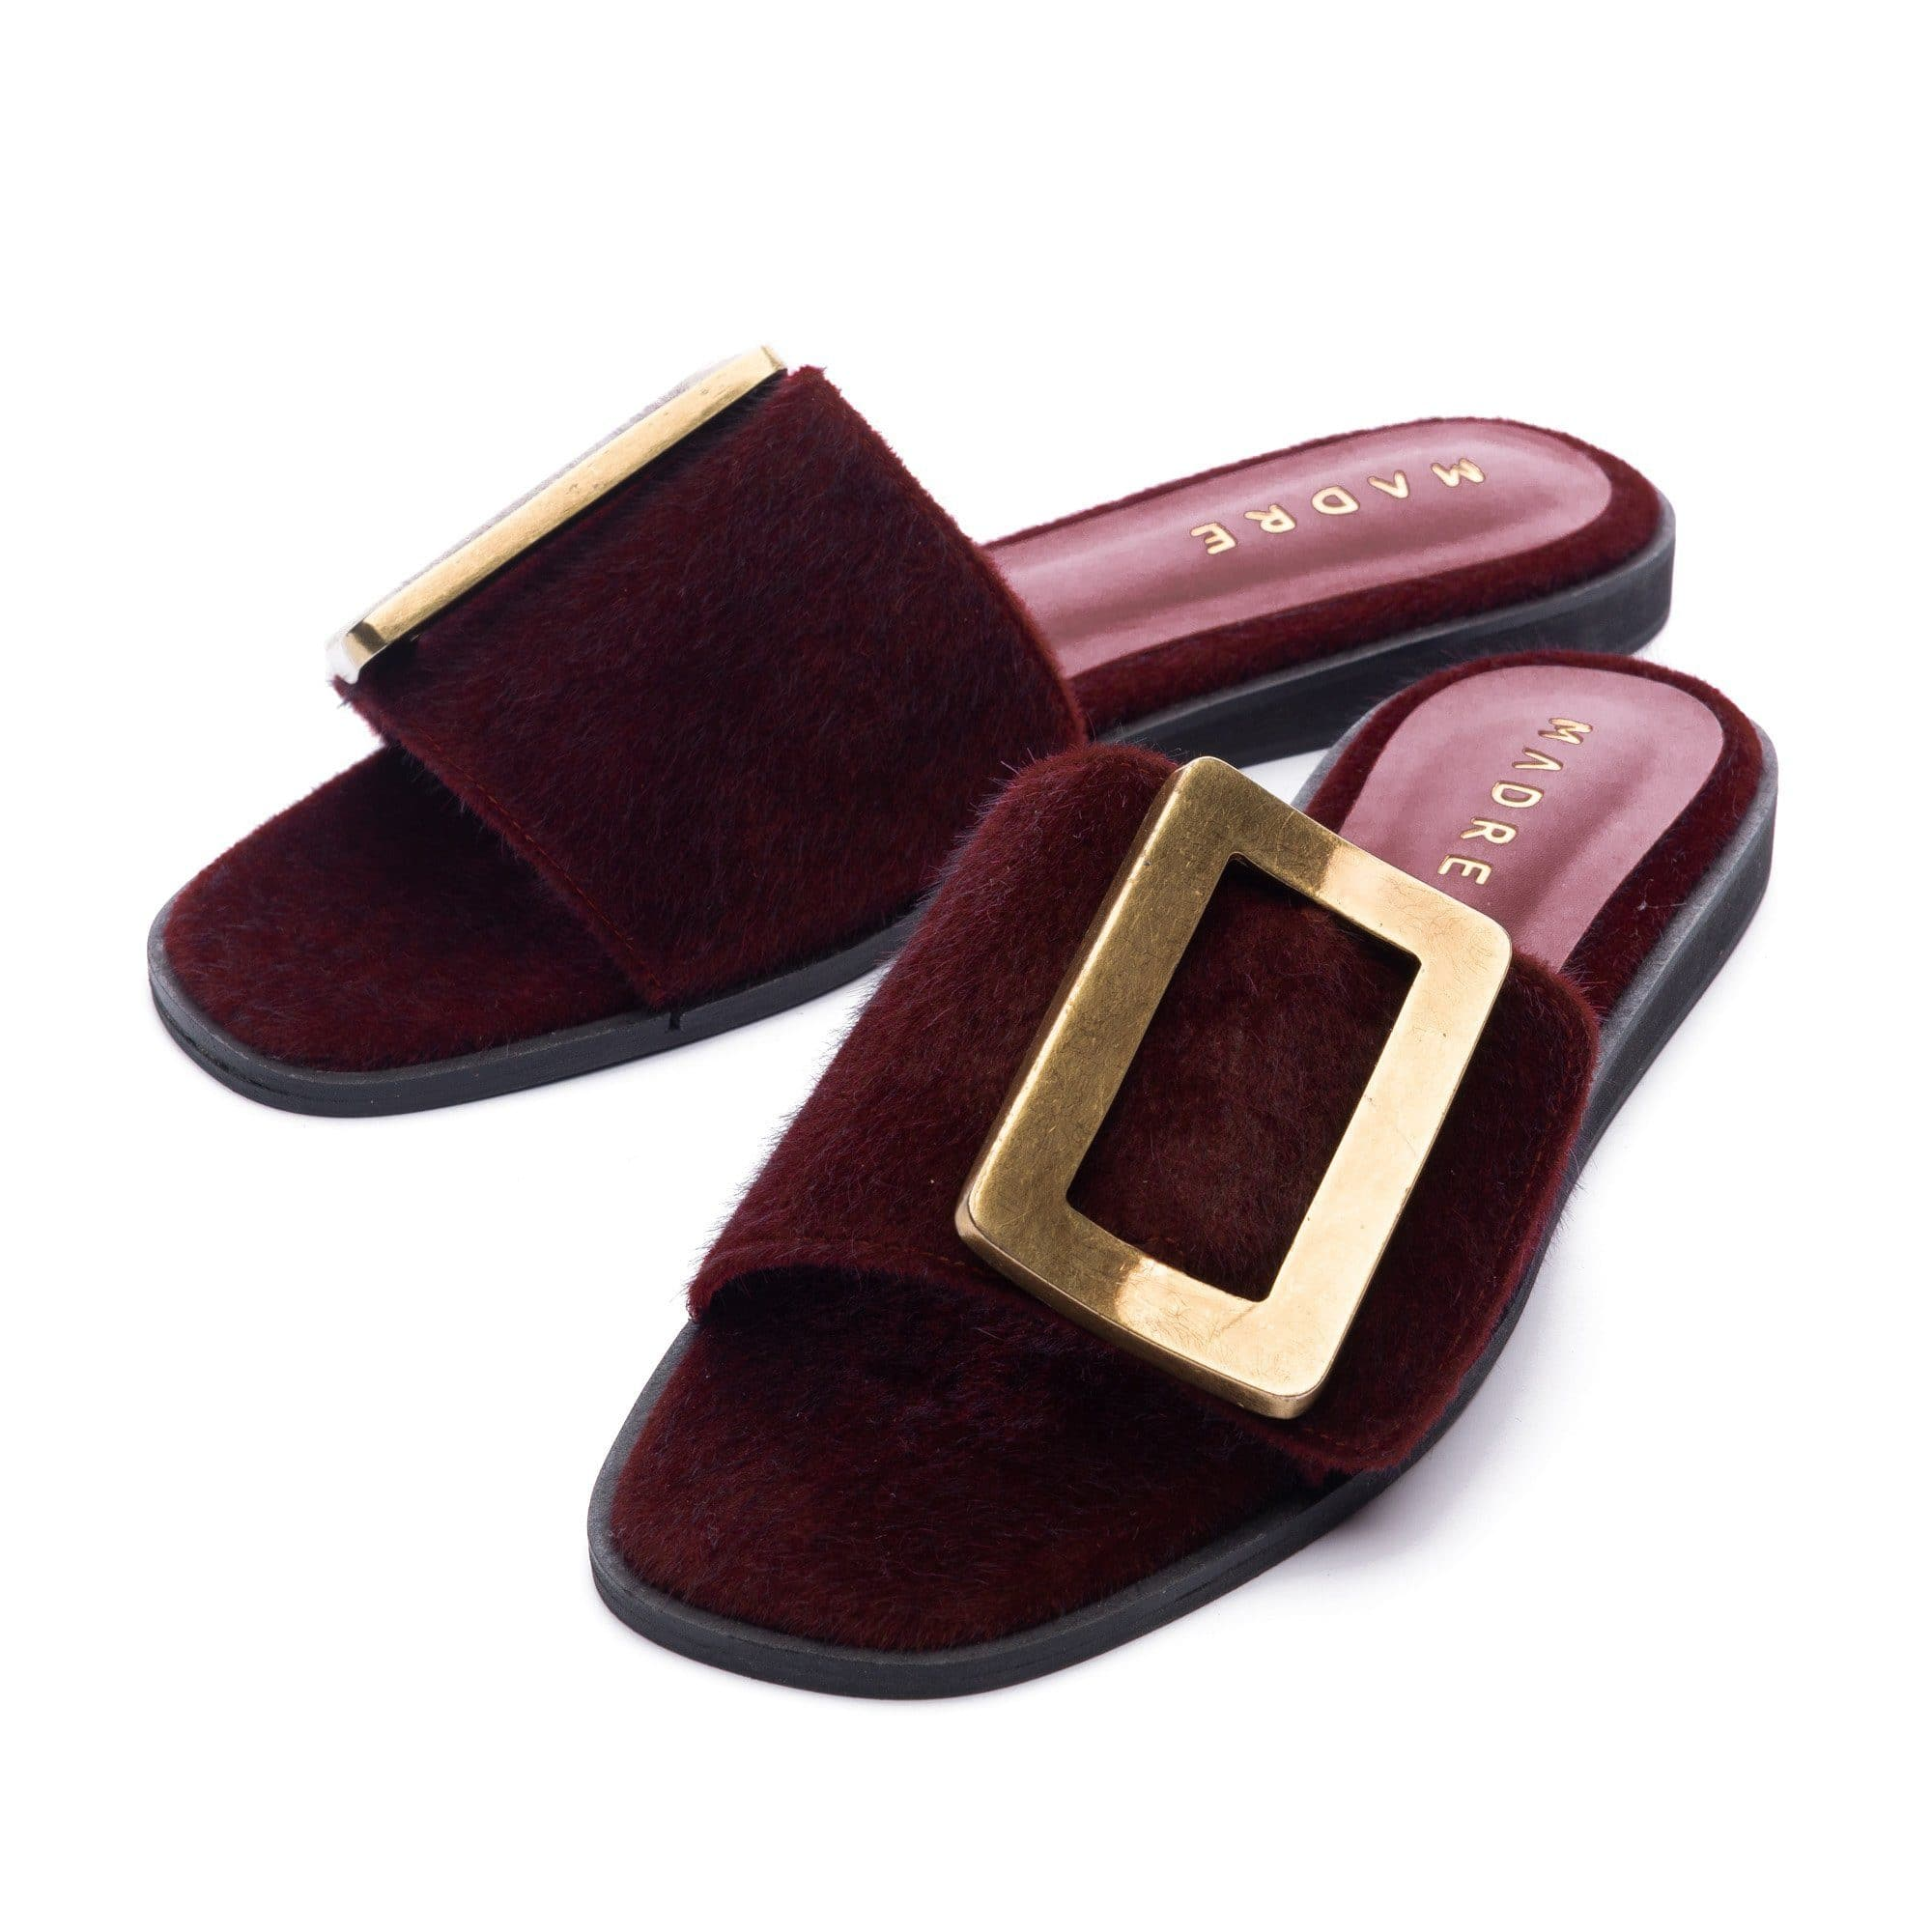 Rustica Flat Shoes Madre Collection